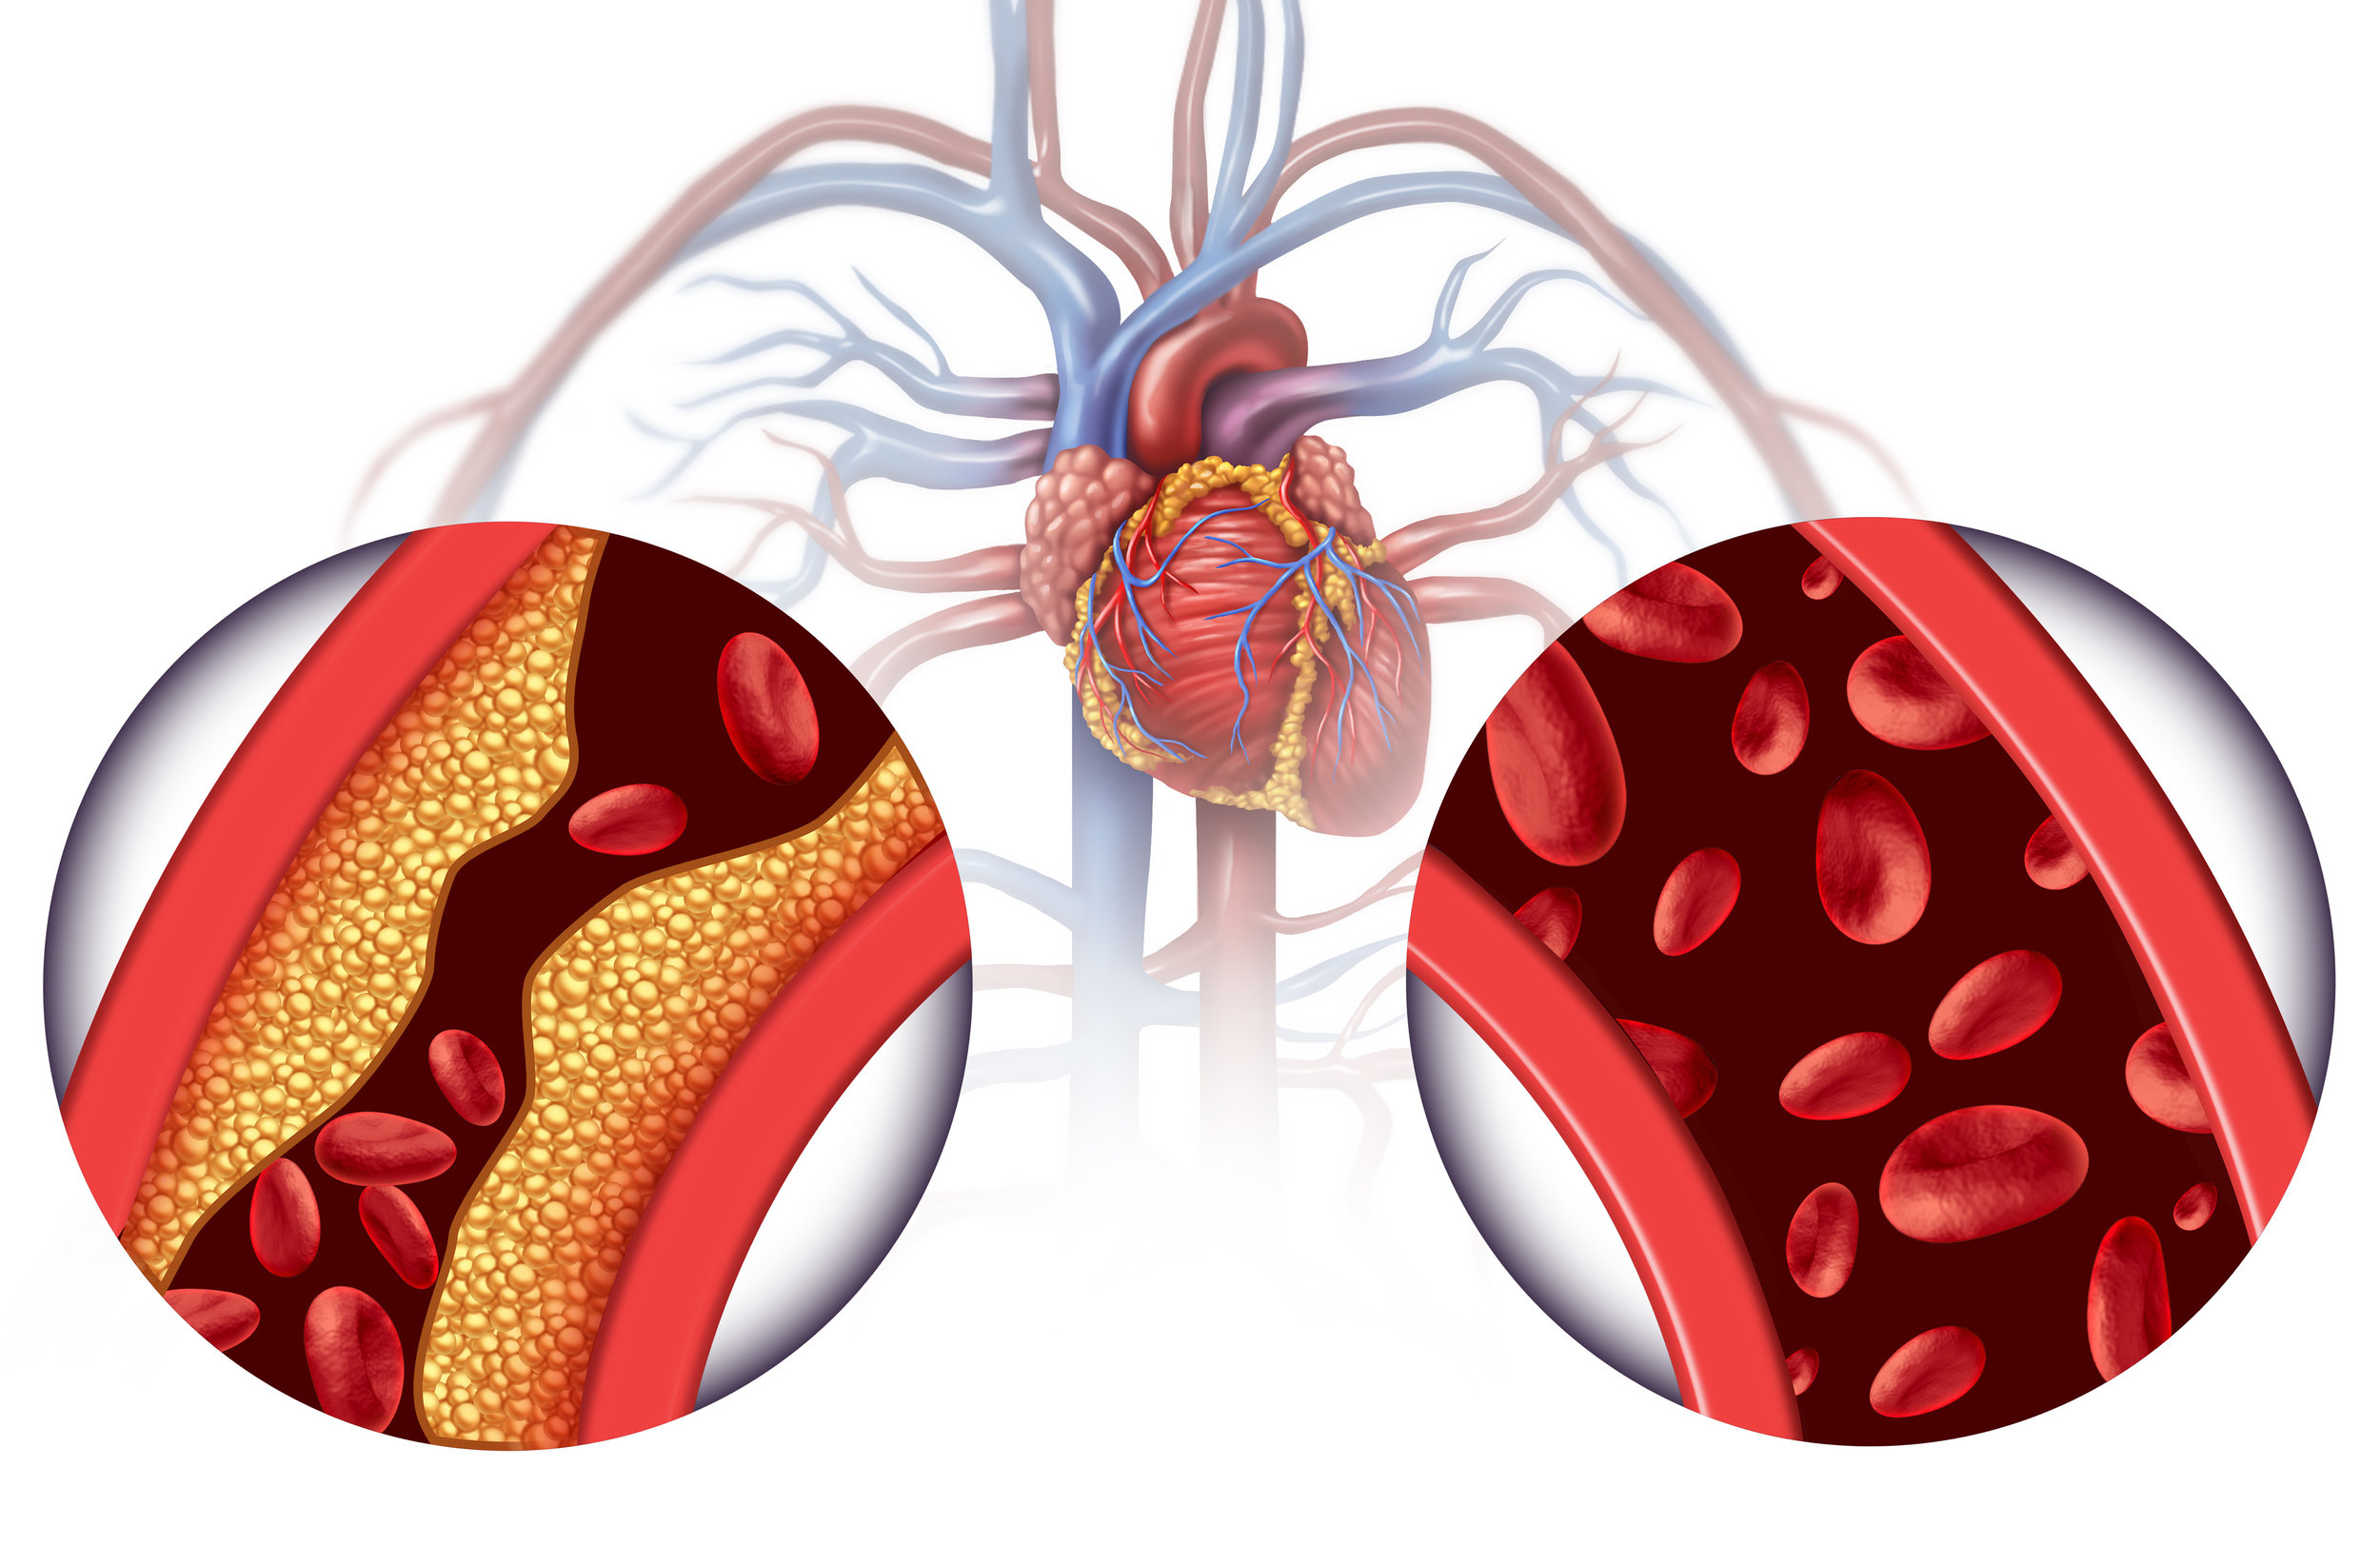 Did you know?: improved circulation following chelation therapy has been measured through ARTERIAL studies conducted on patients at the NHIC .